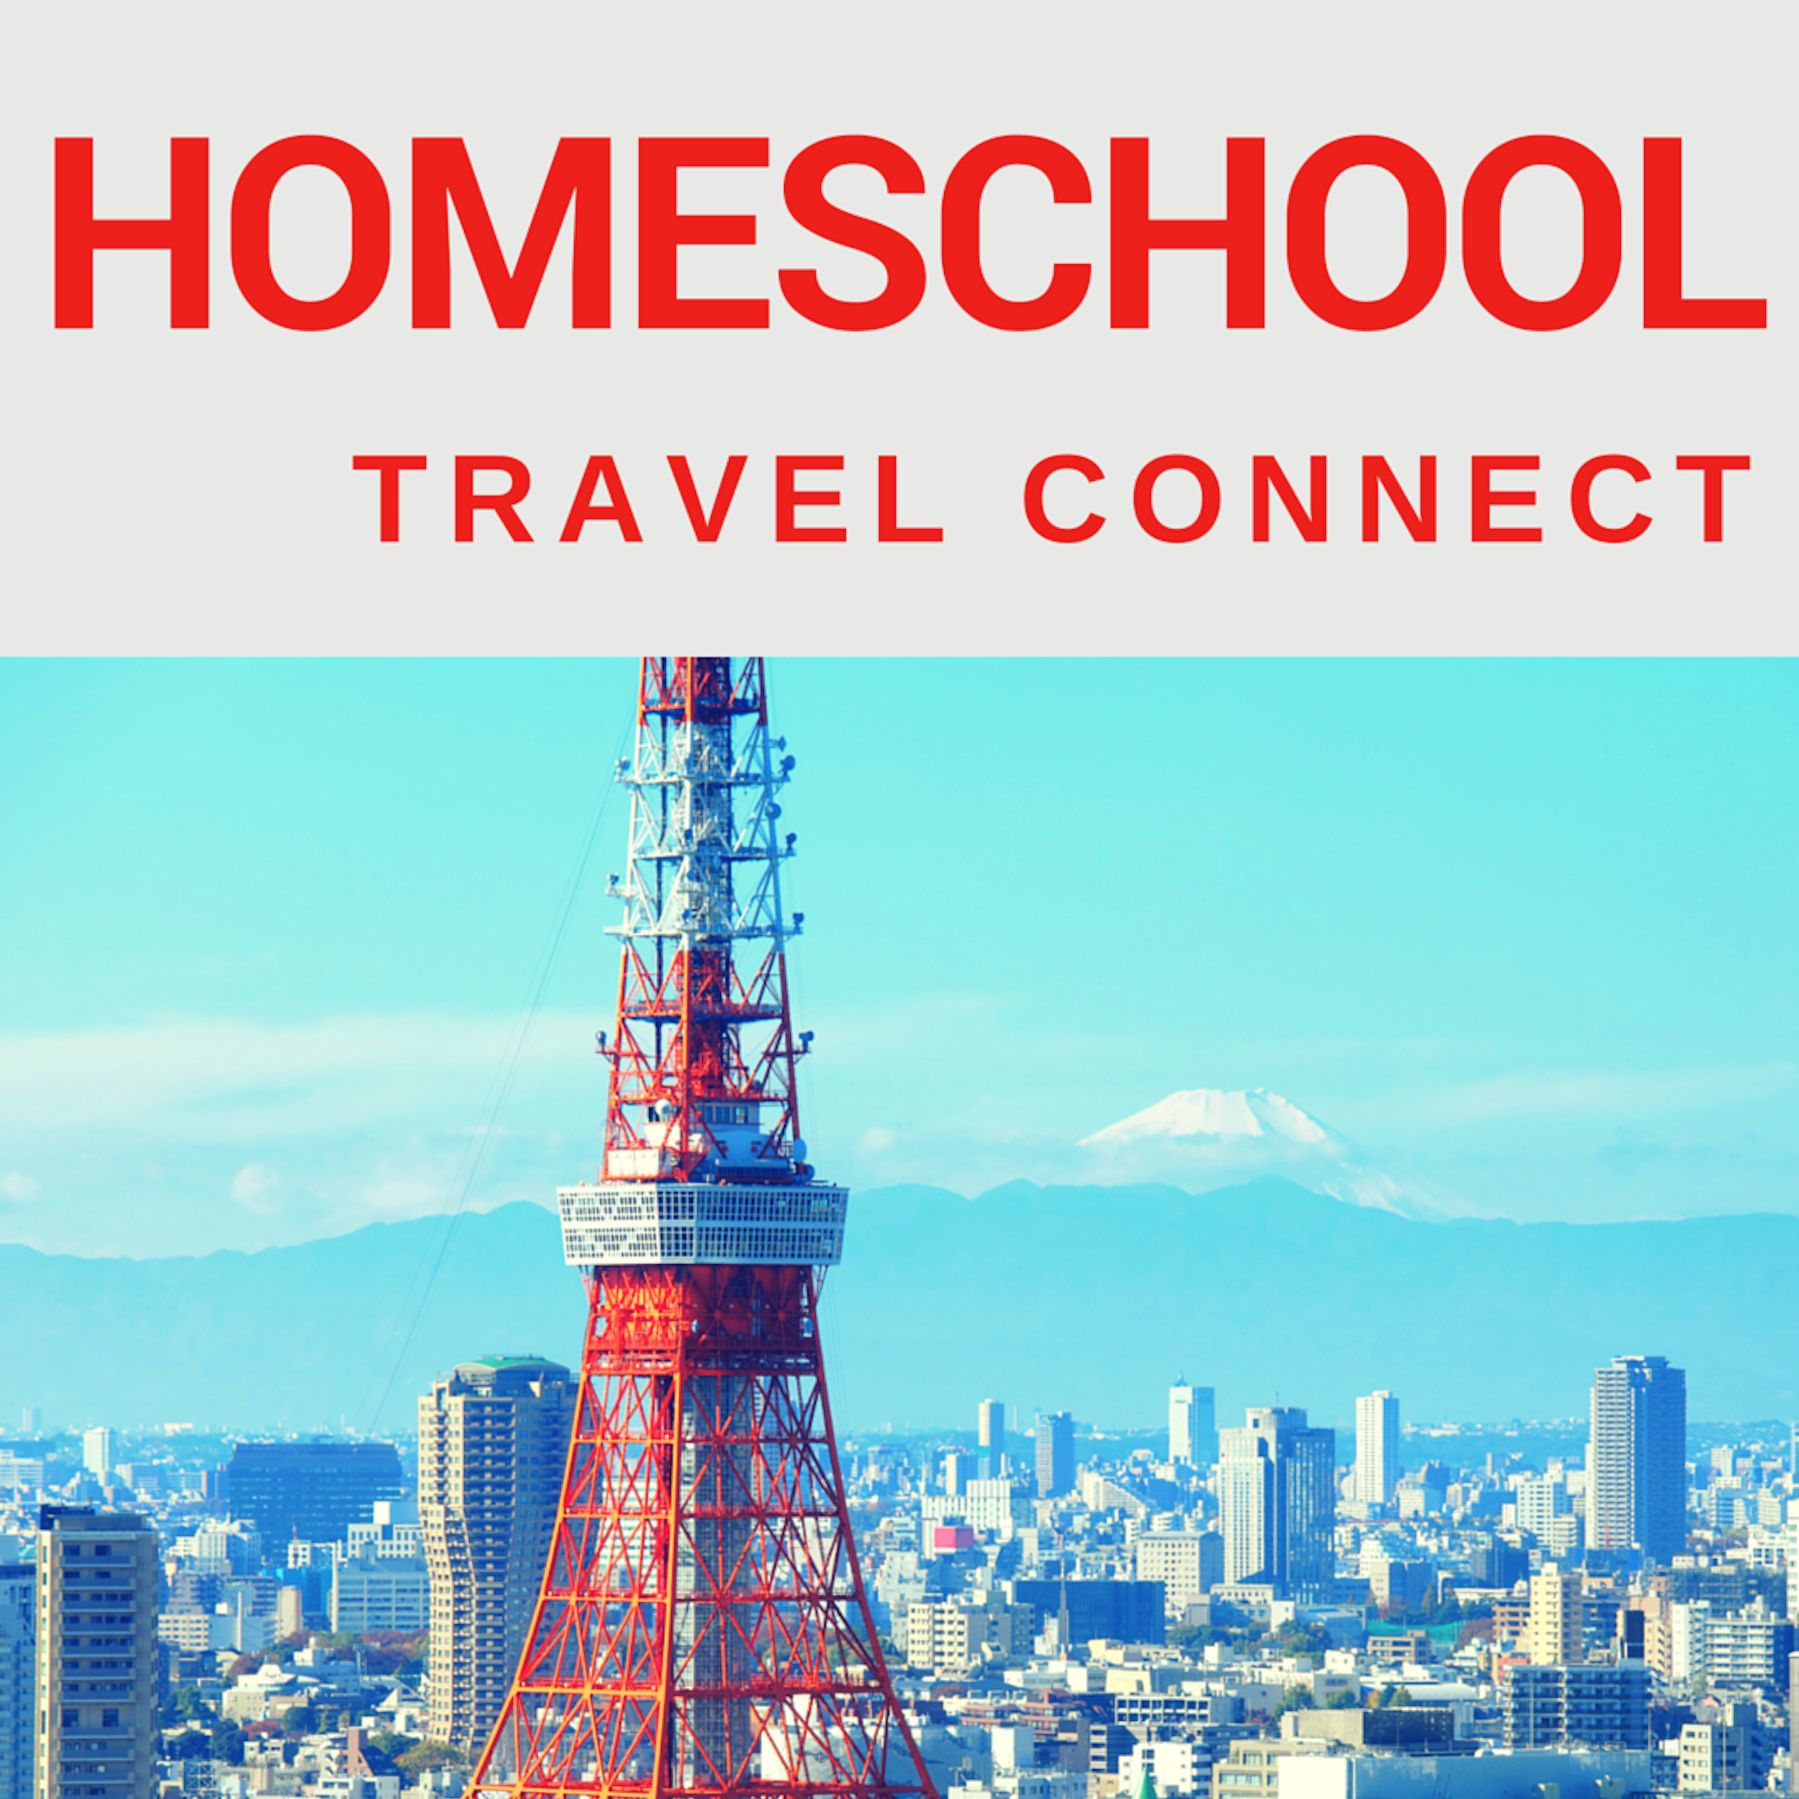 Homeschool Travel Connect